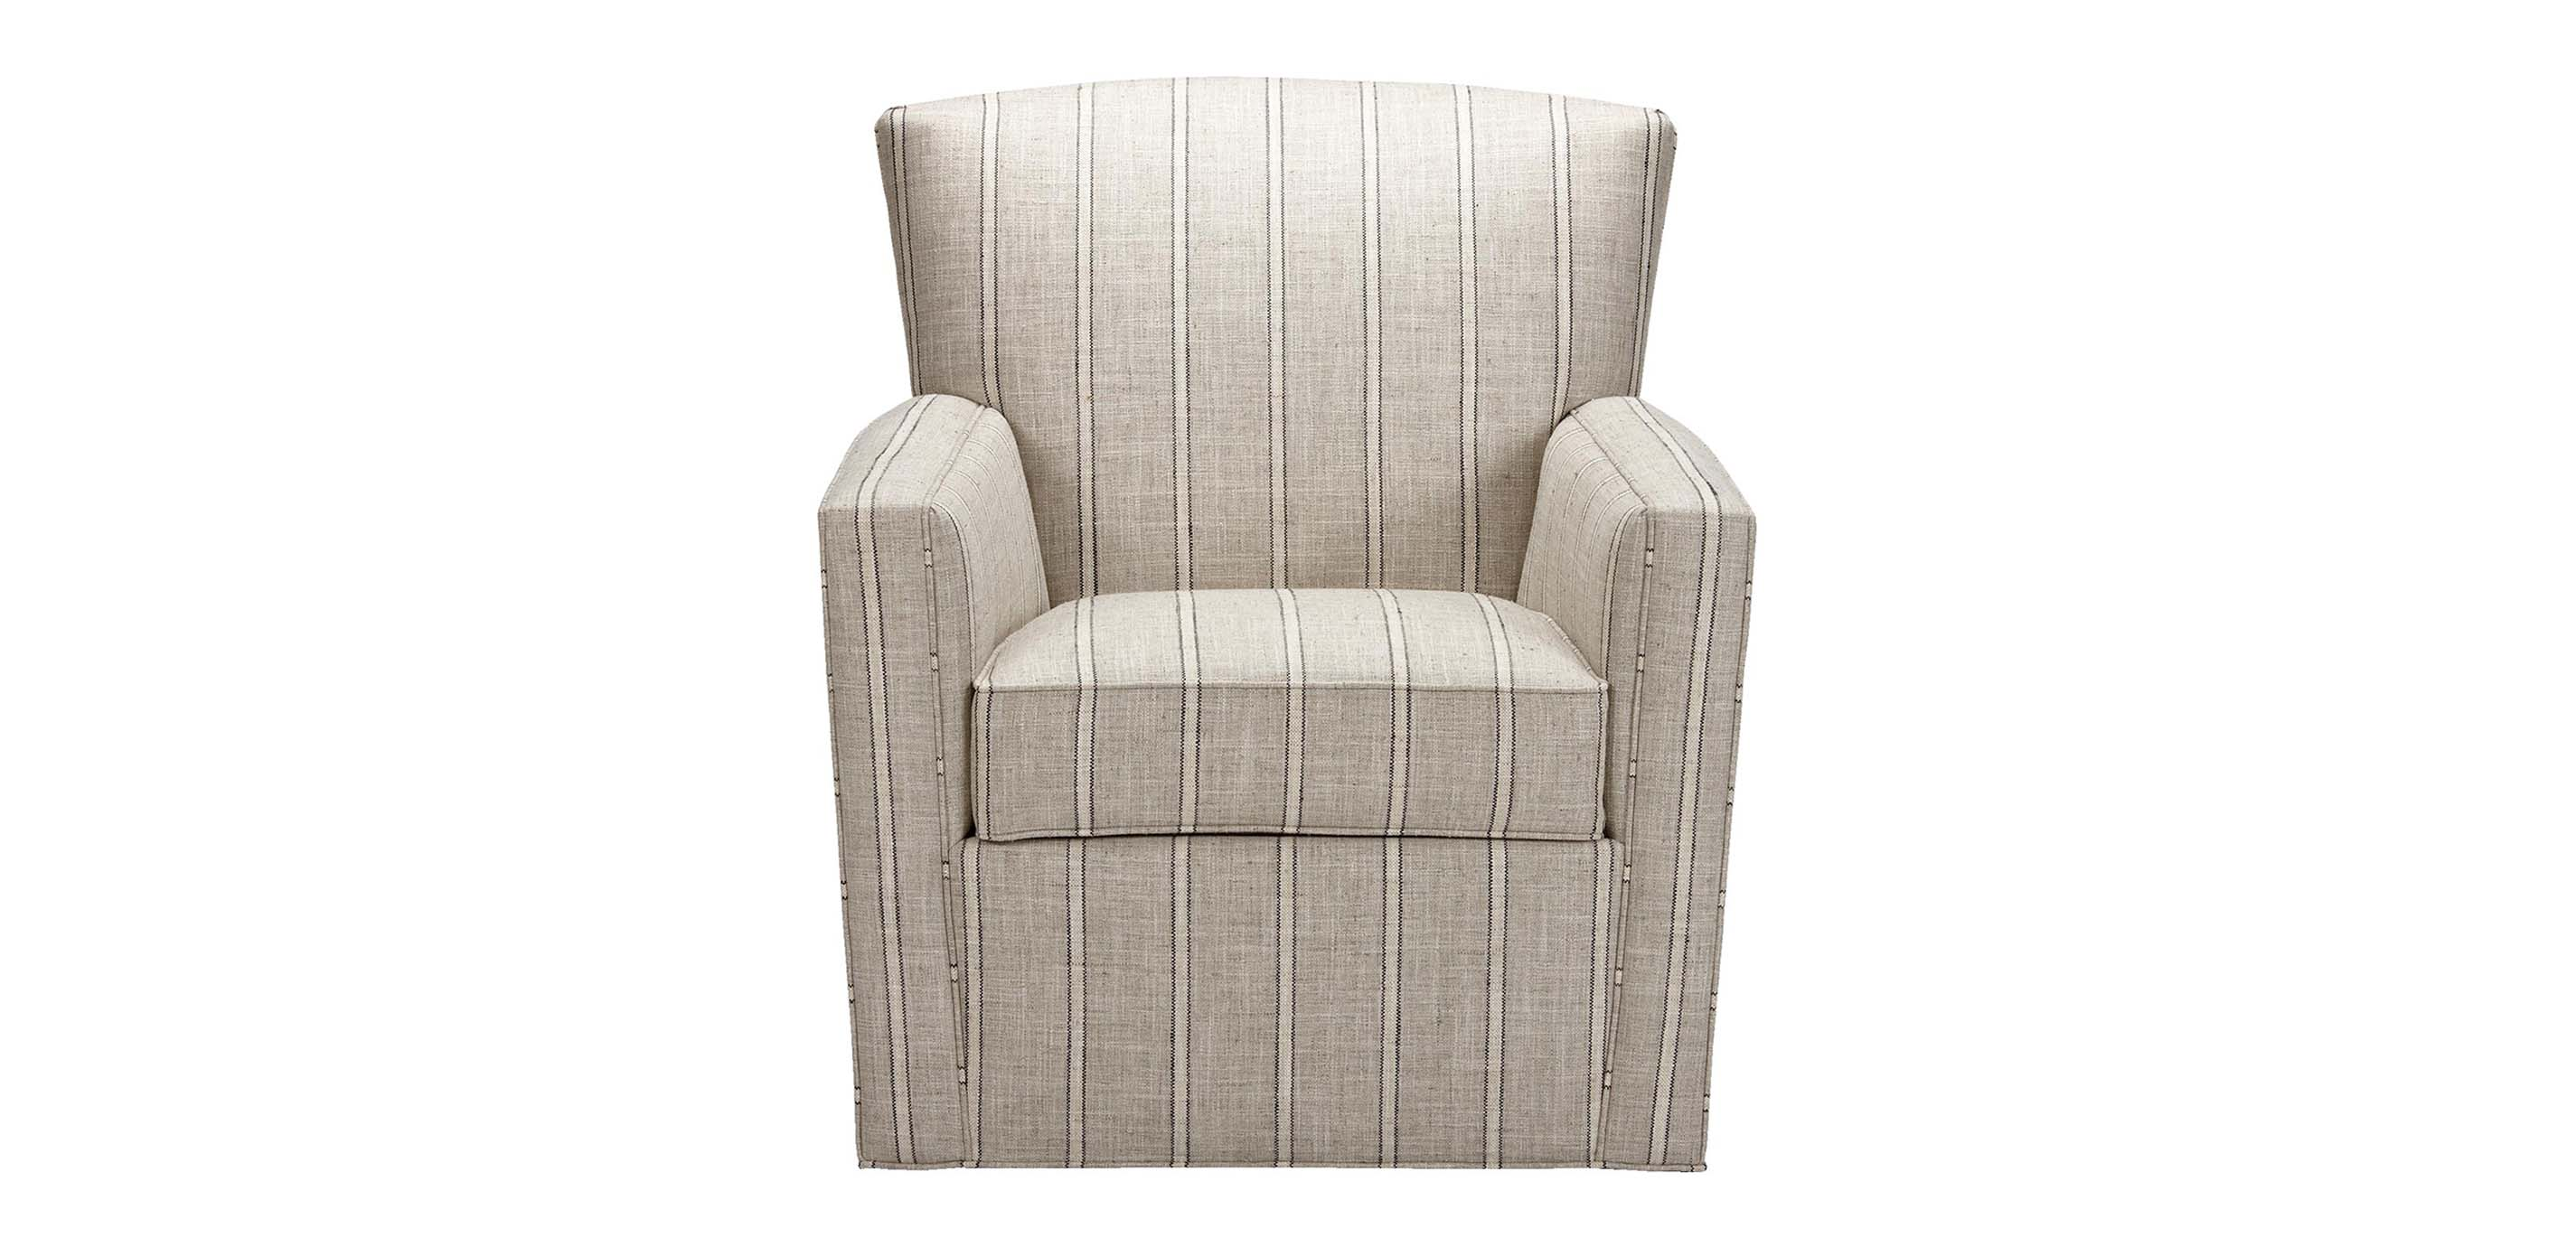 Turner Swivel Chair Chairs Amp Chaises Ethan Allen